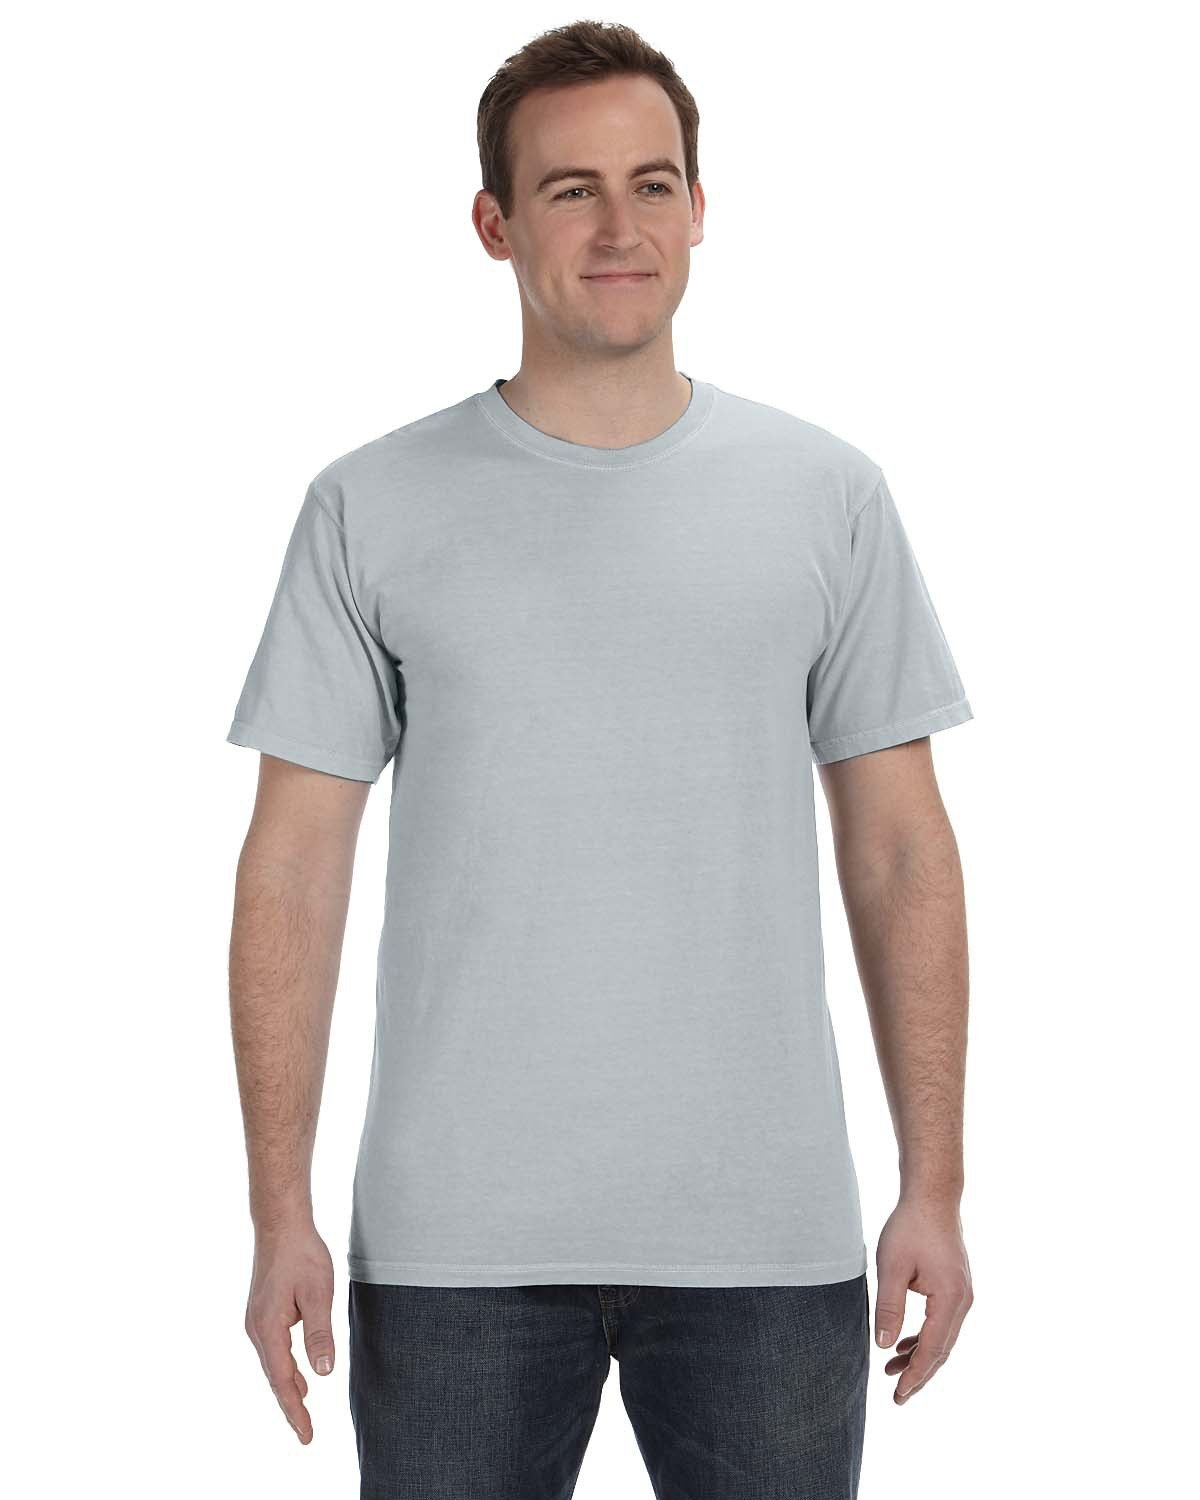 Authentic Pigment 5.6 oz. Pigment-Dyed & Direct-Dyed Ringspun T-Shirt CHROME